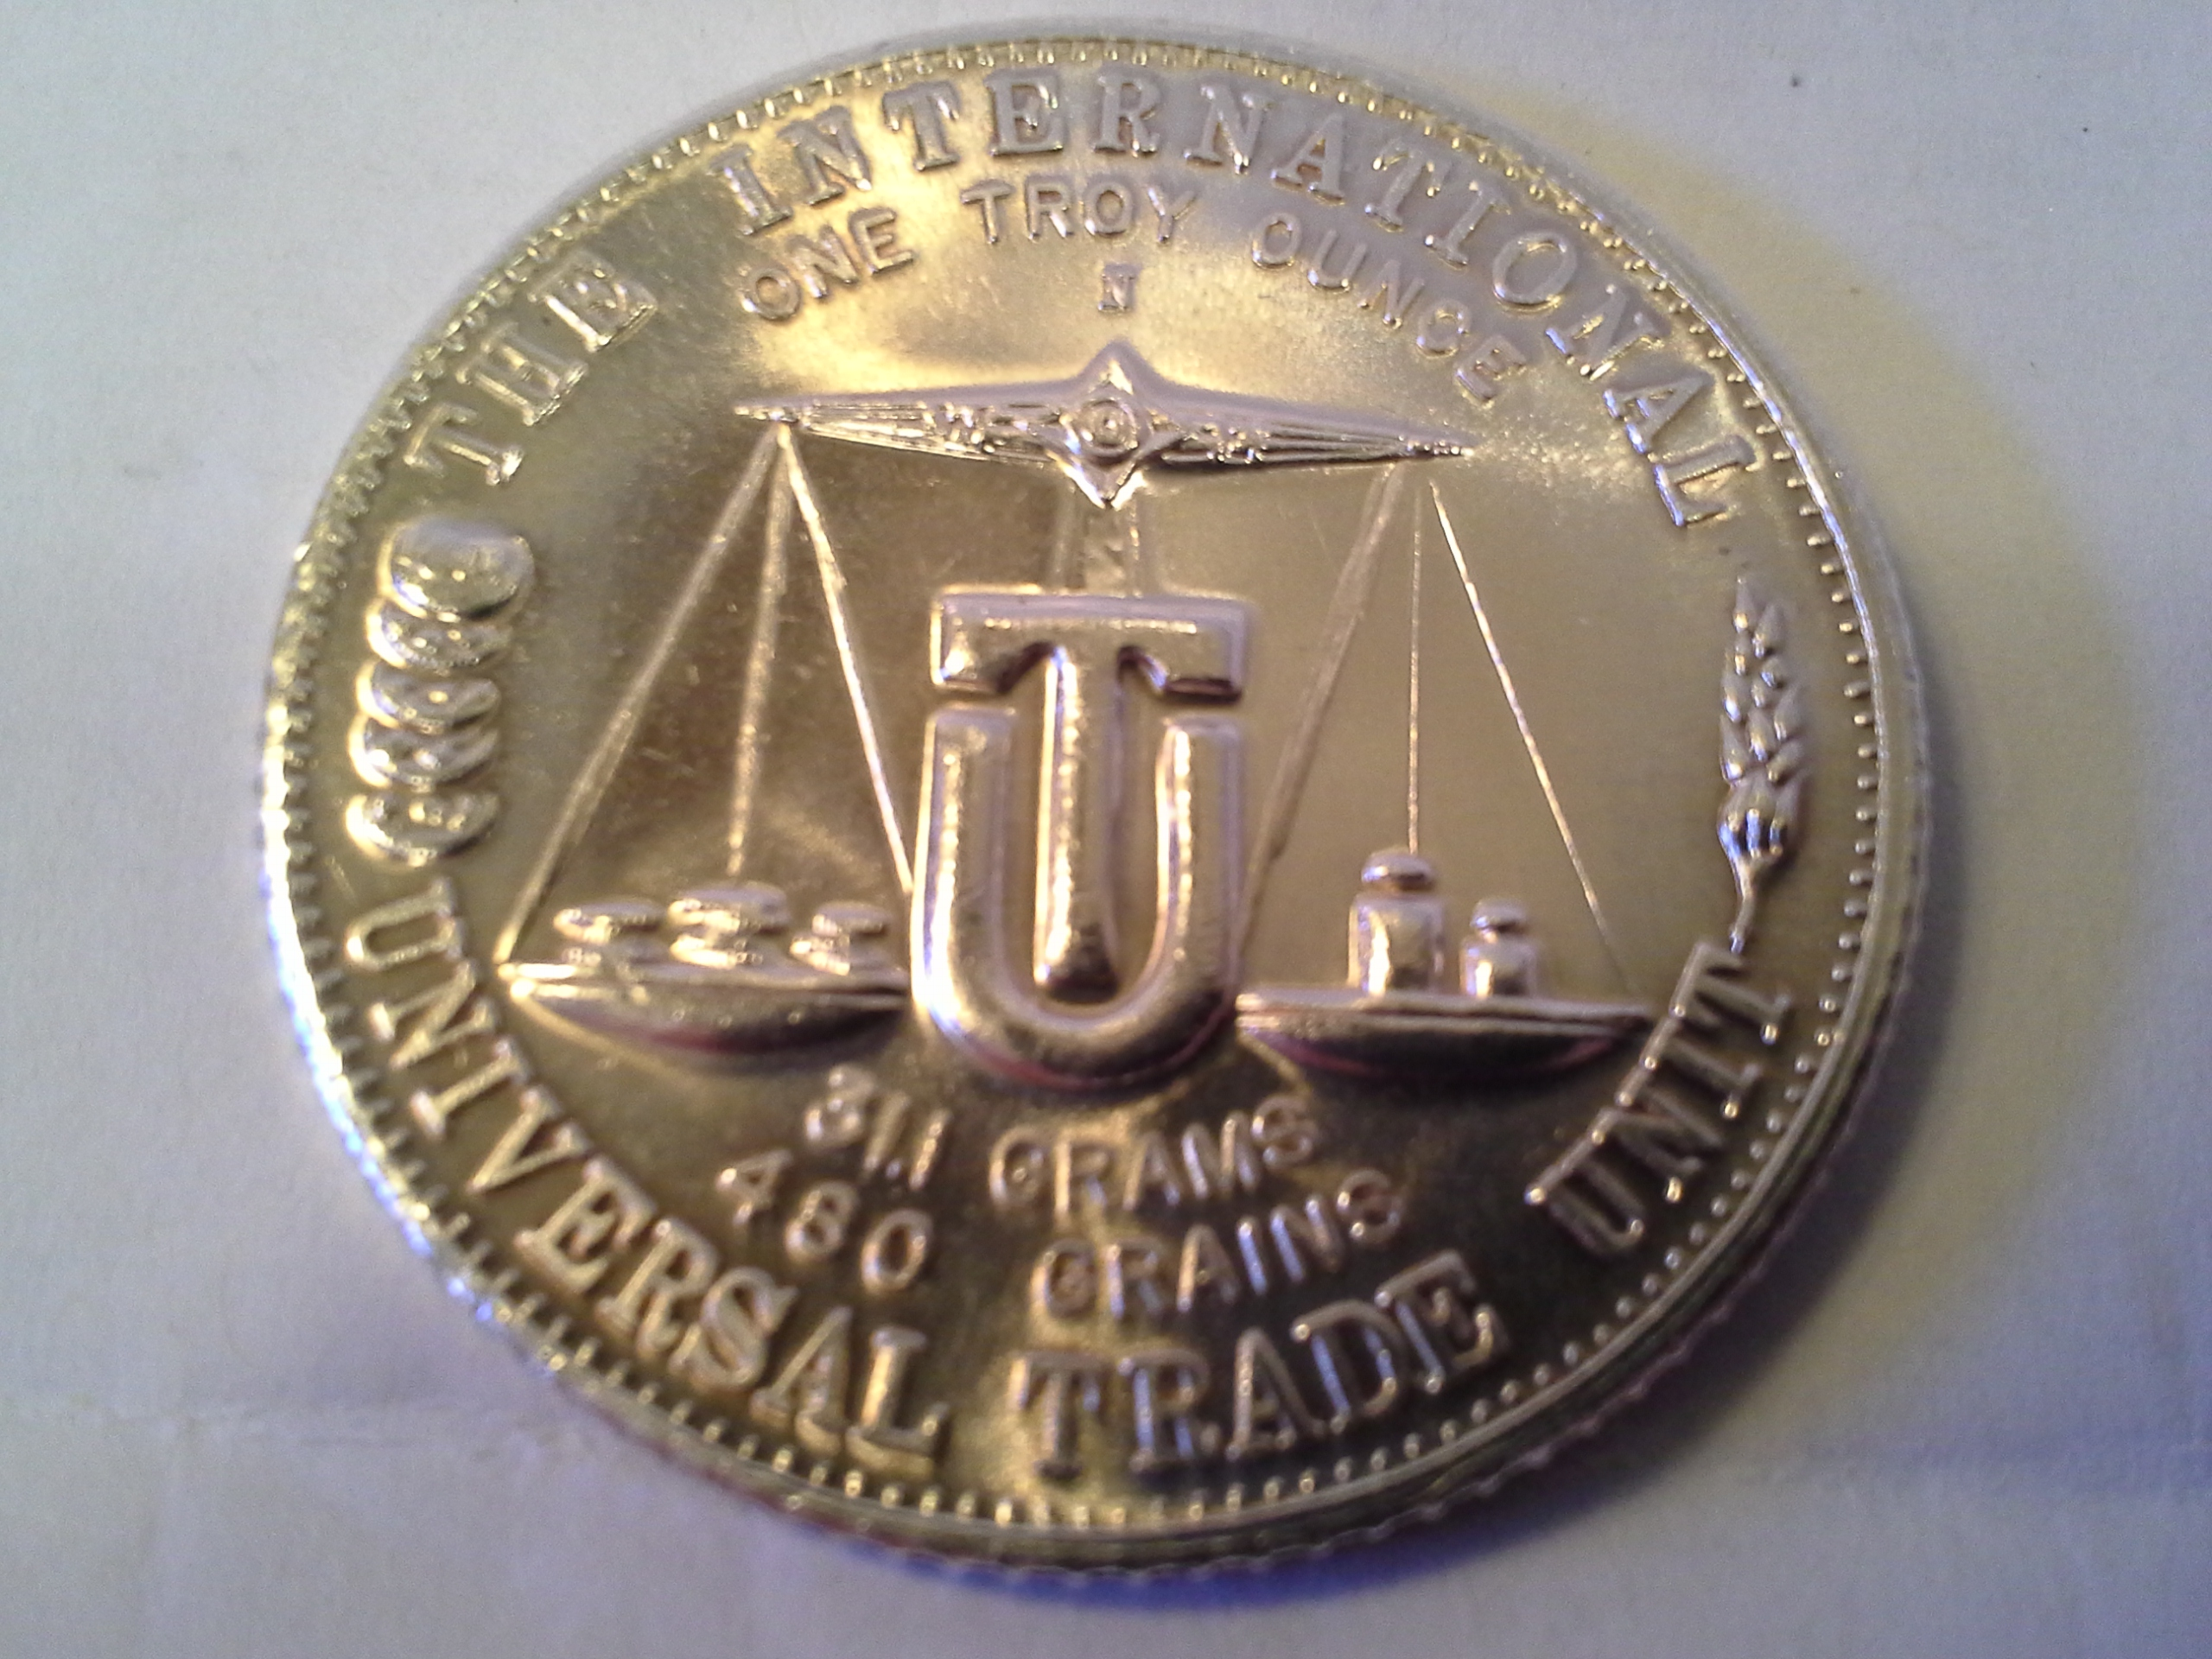 1 Oz 999 Fine Silver Silver World Trade International